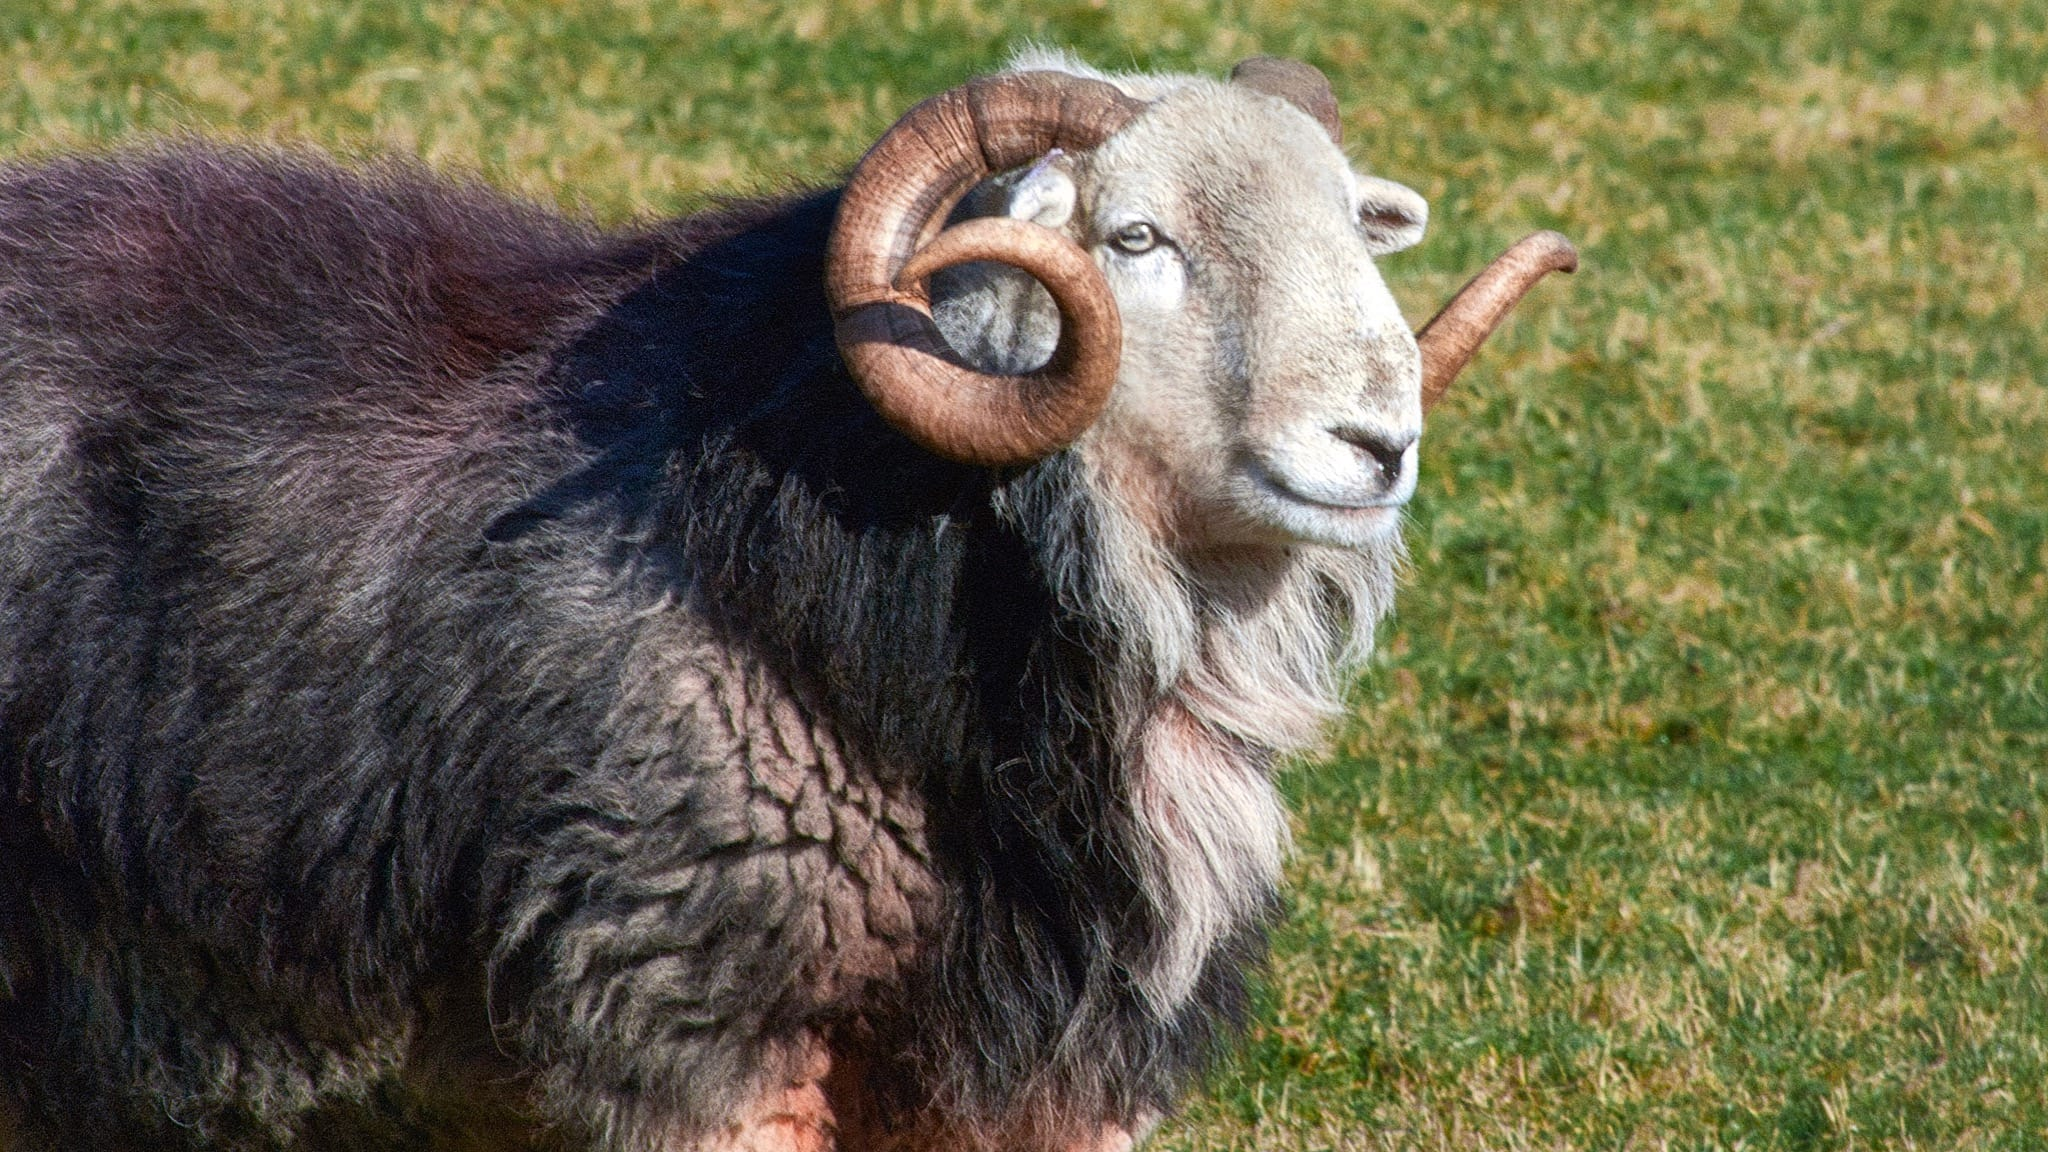 An older Herdwick tup (ram) with curled horns, dark grey, mane, and white face